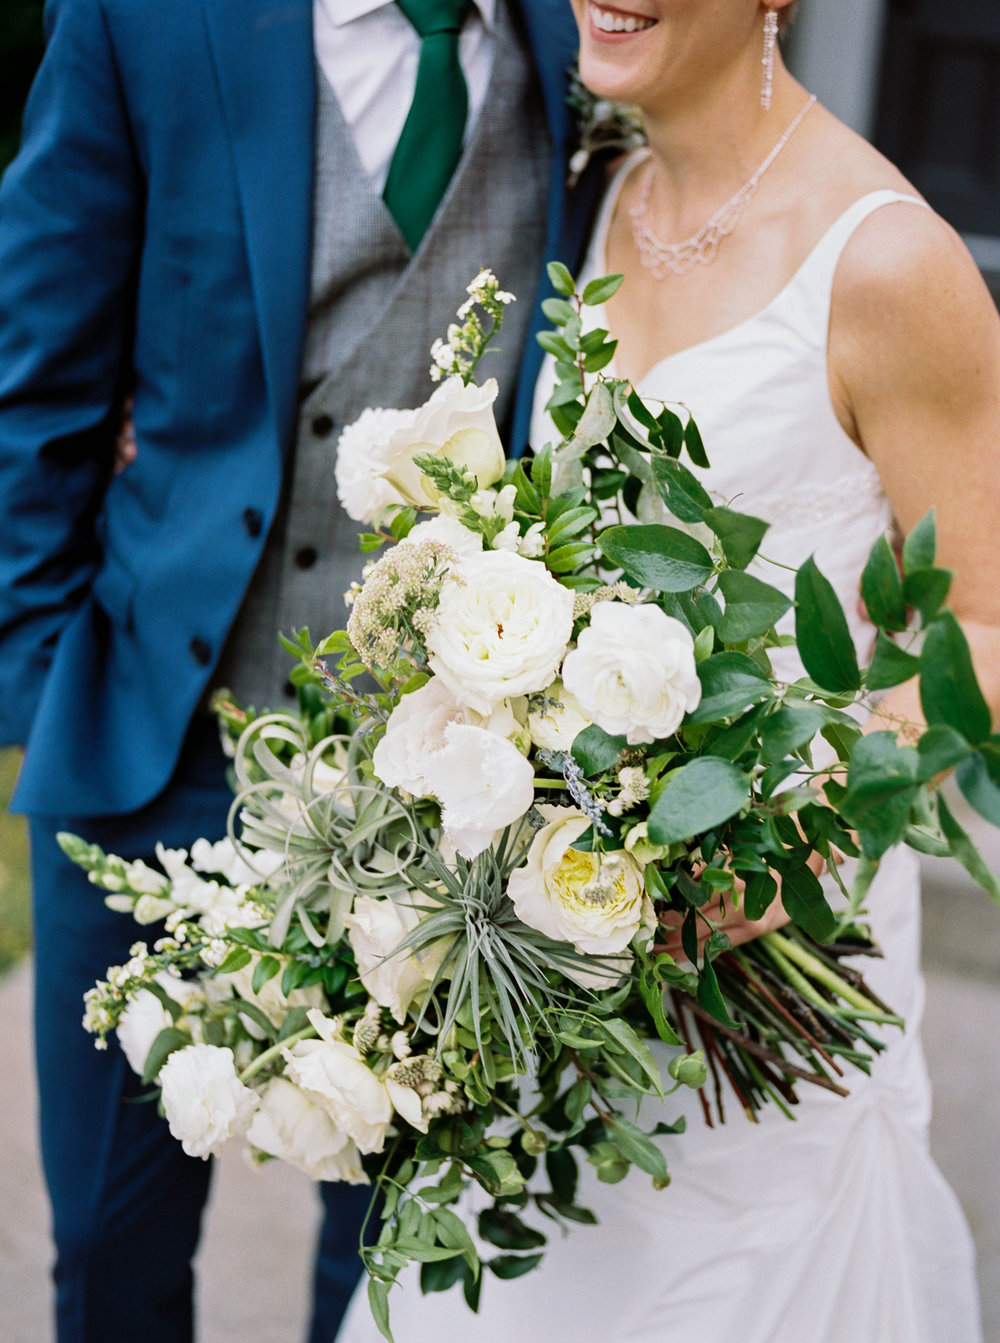 Organic bridal bouquet with garden roses, ranunculus, air plants, and greenery // Nashville, TN Wedding Florist